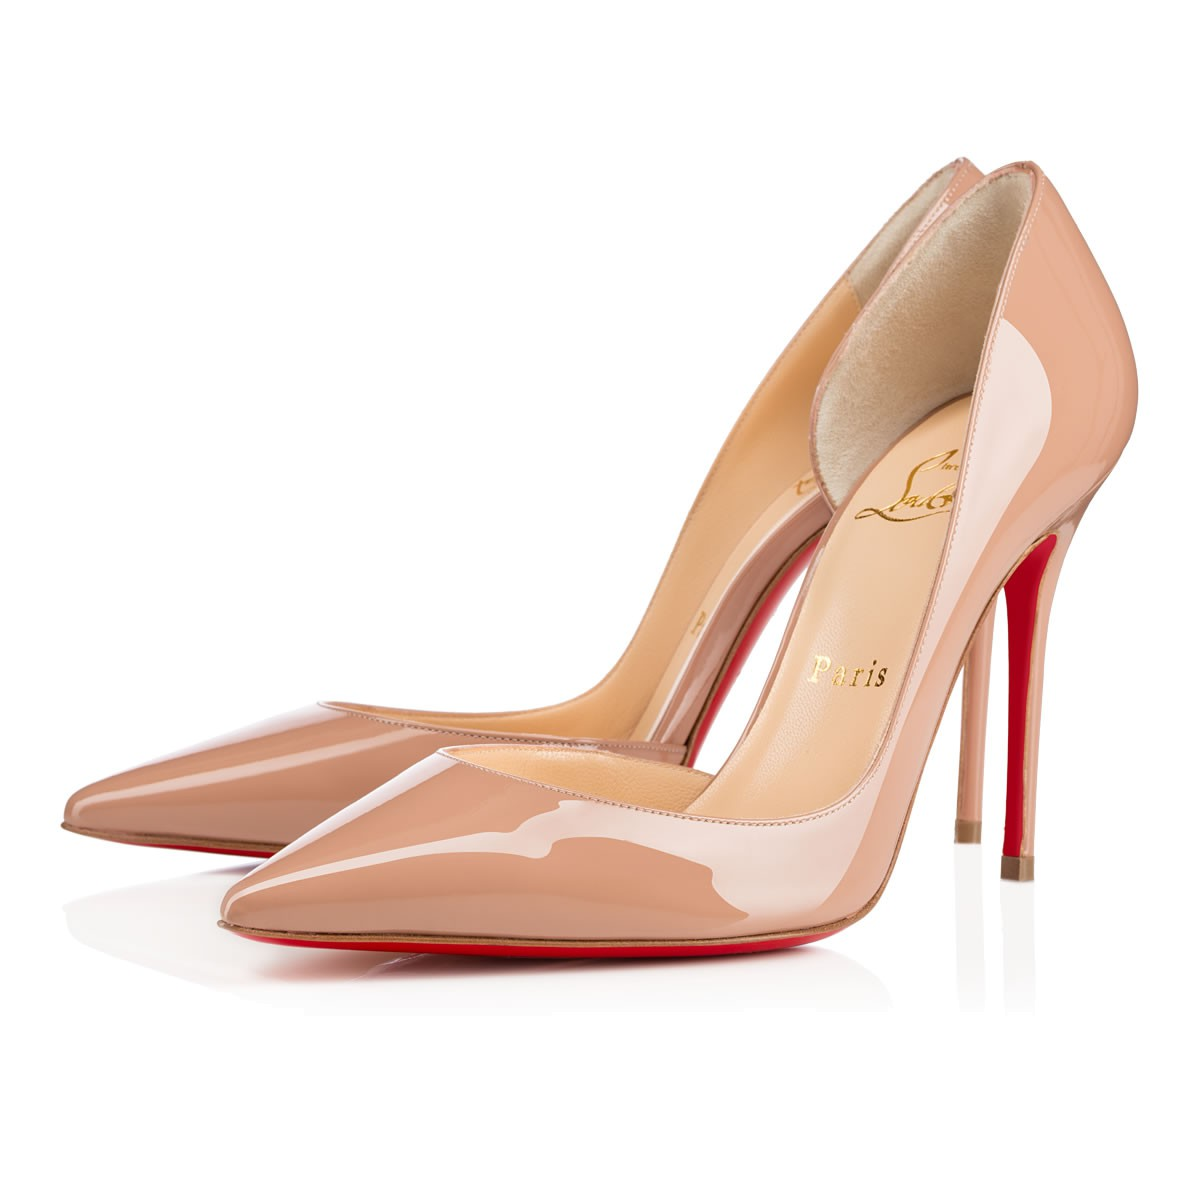 d00223923 Iriza 100 Nude Patent Leather - Women Shoes - Christian Louboutin